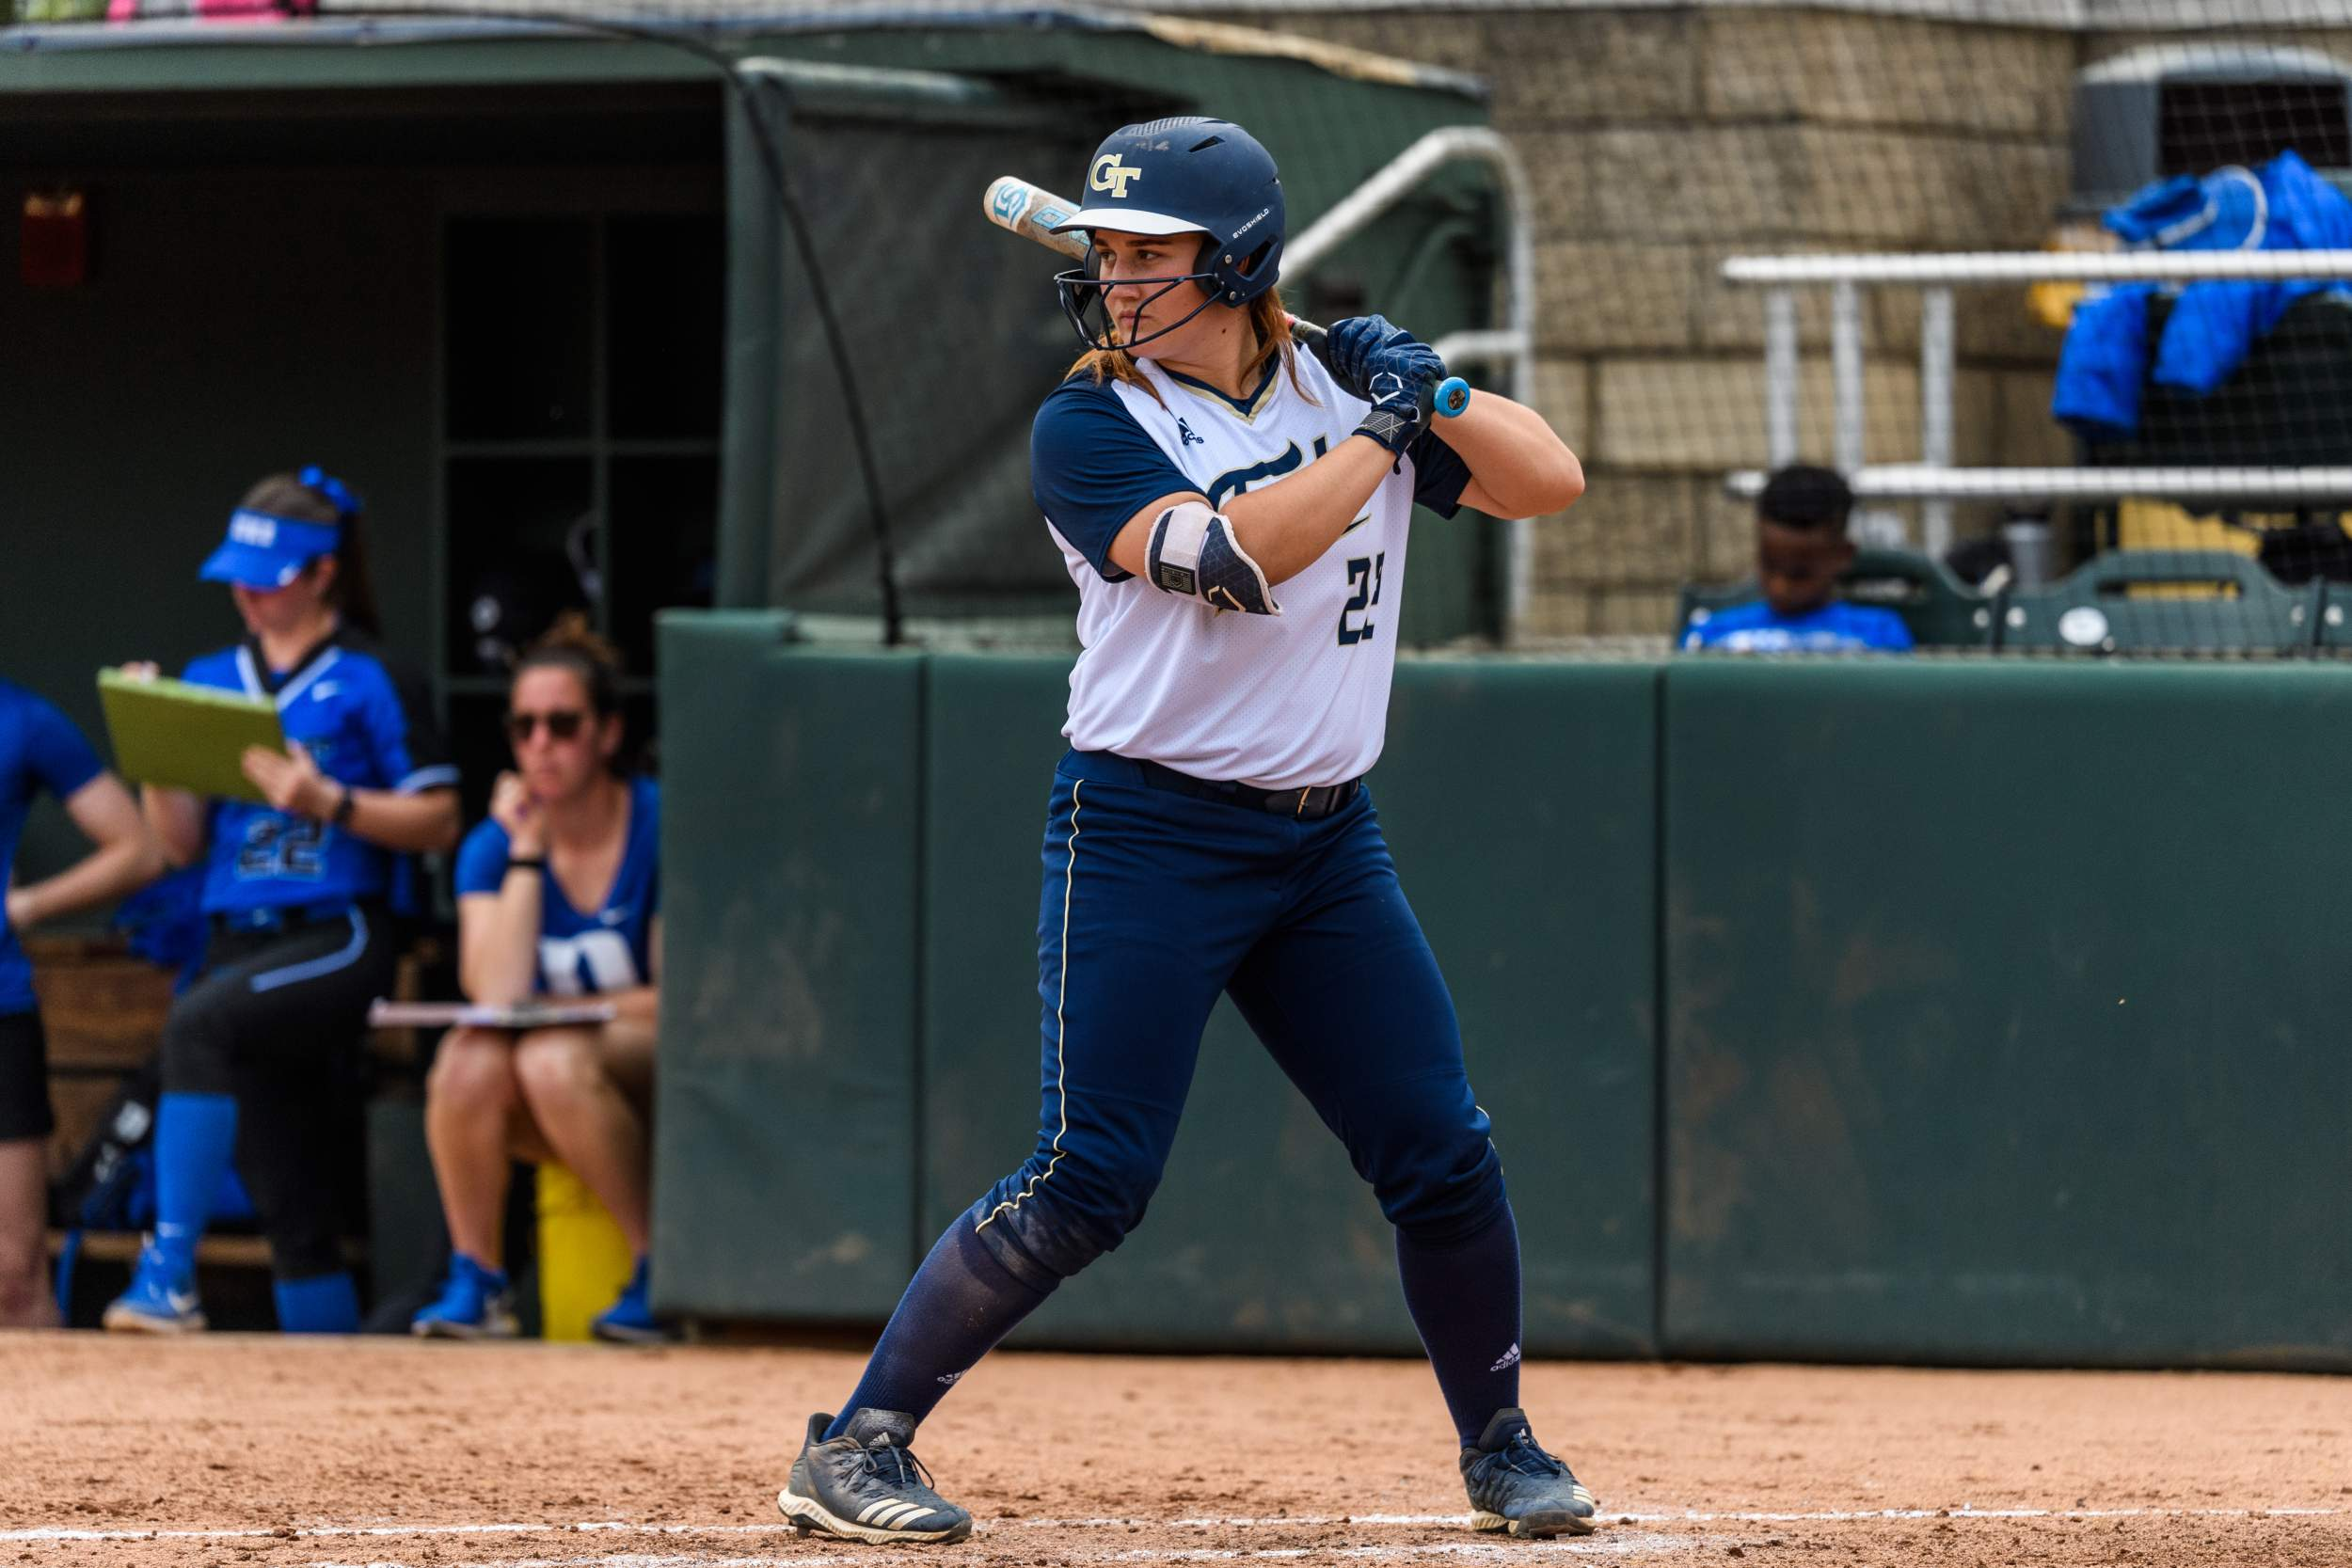 Awald Earns NFCA All-Region Honors